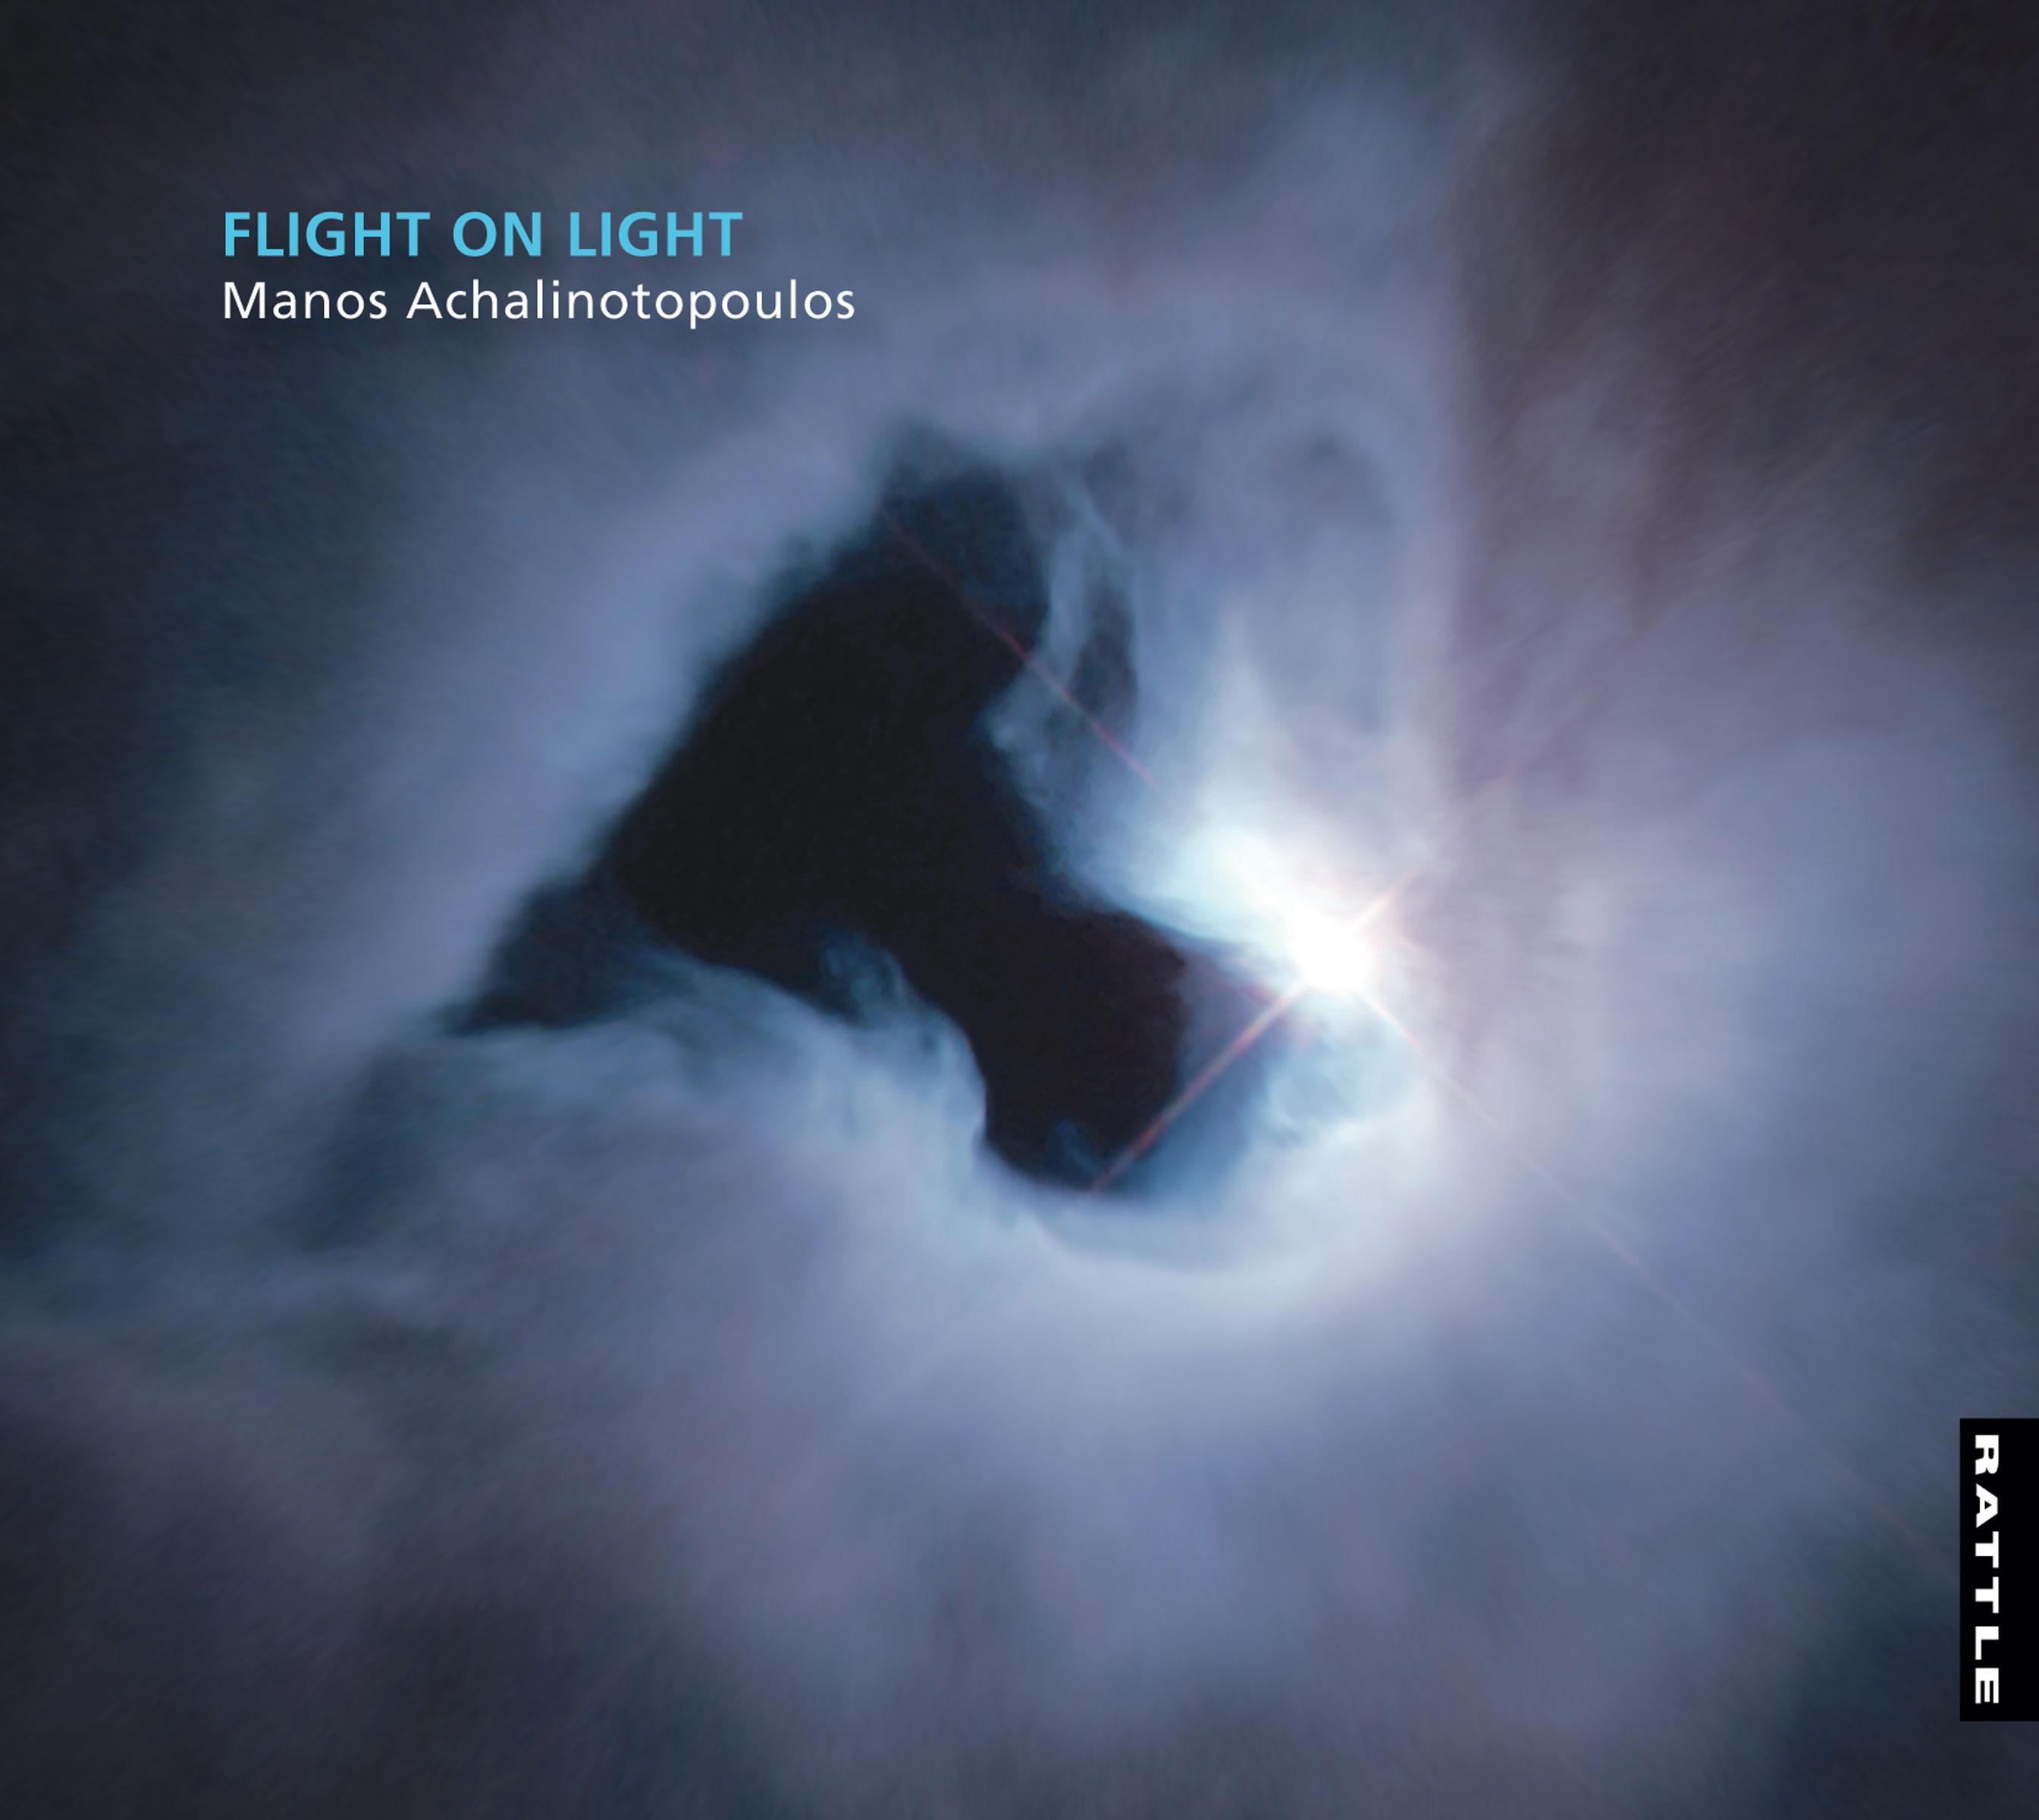 Manos Achalinotopoulos | Flight on Light - downloadable MP3 ALBUM